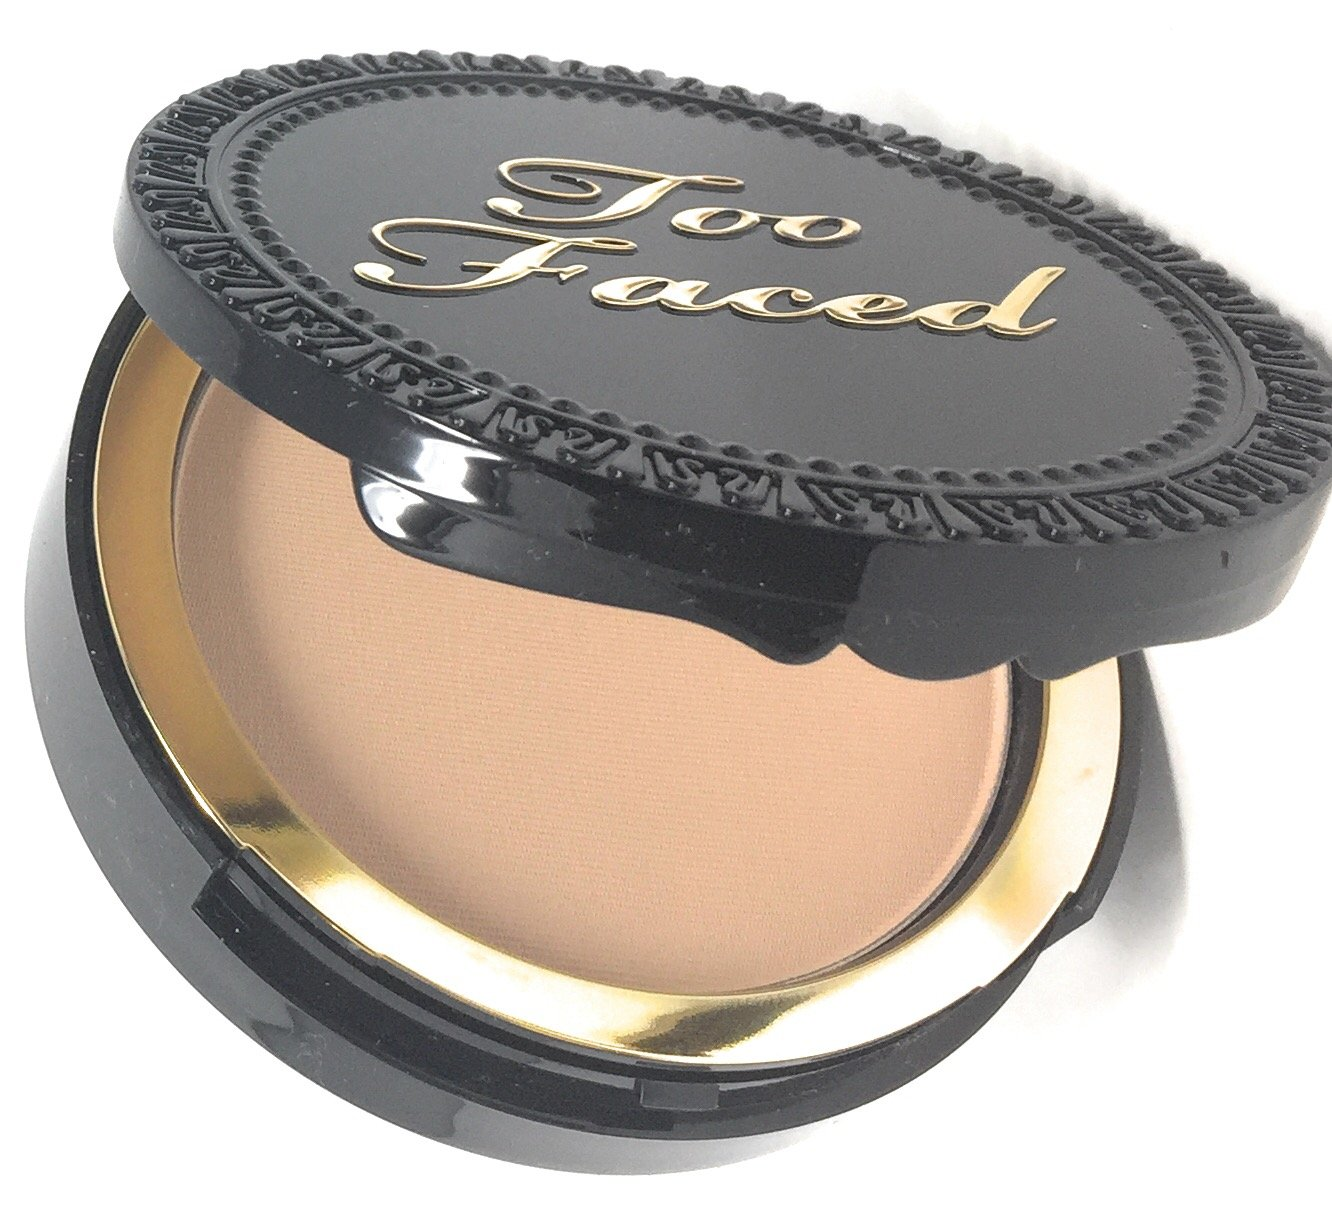 Too Faced Cocoa Powder Foundation